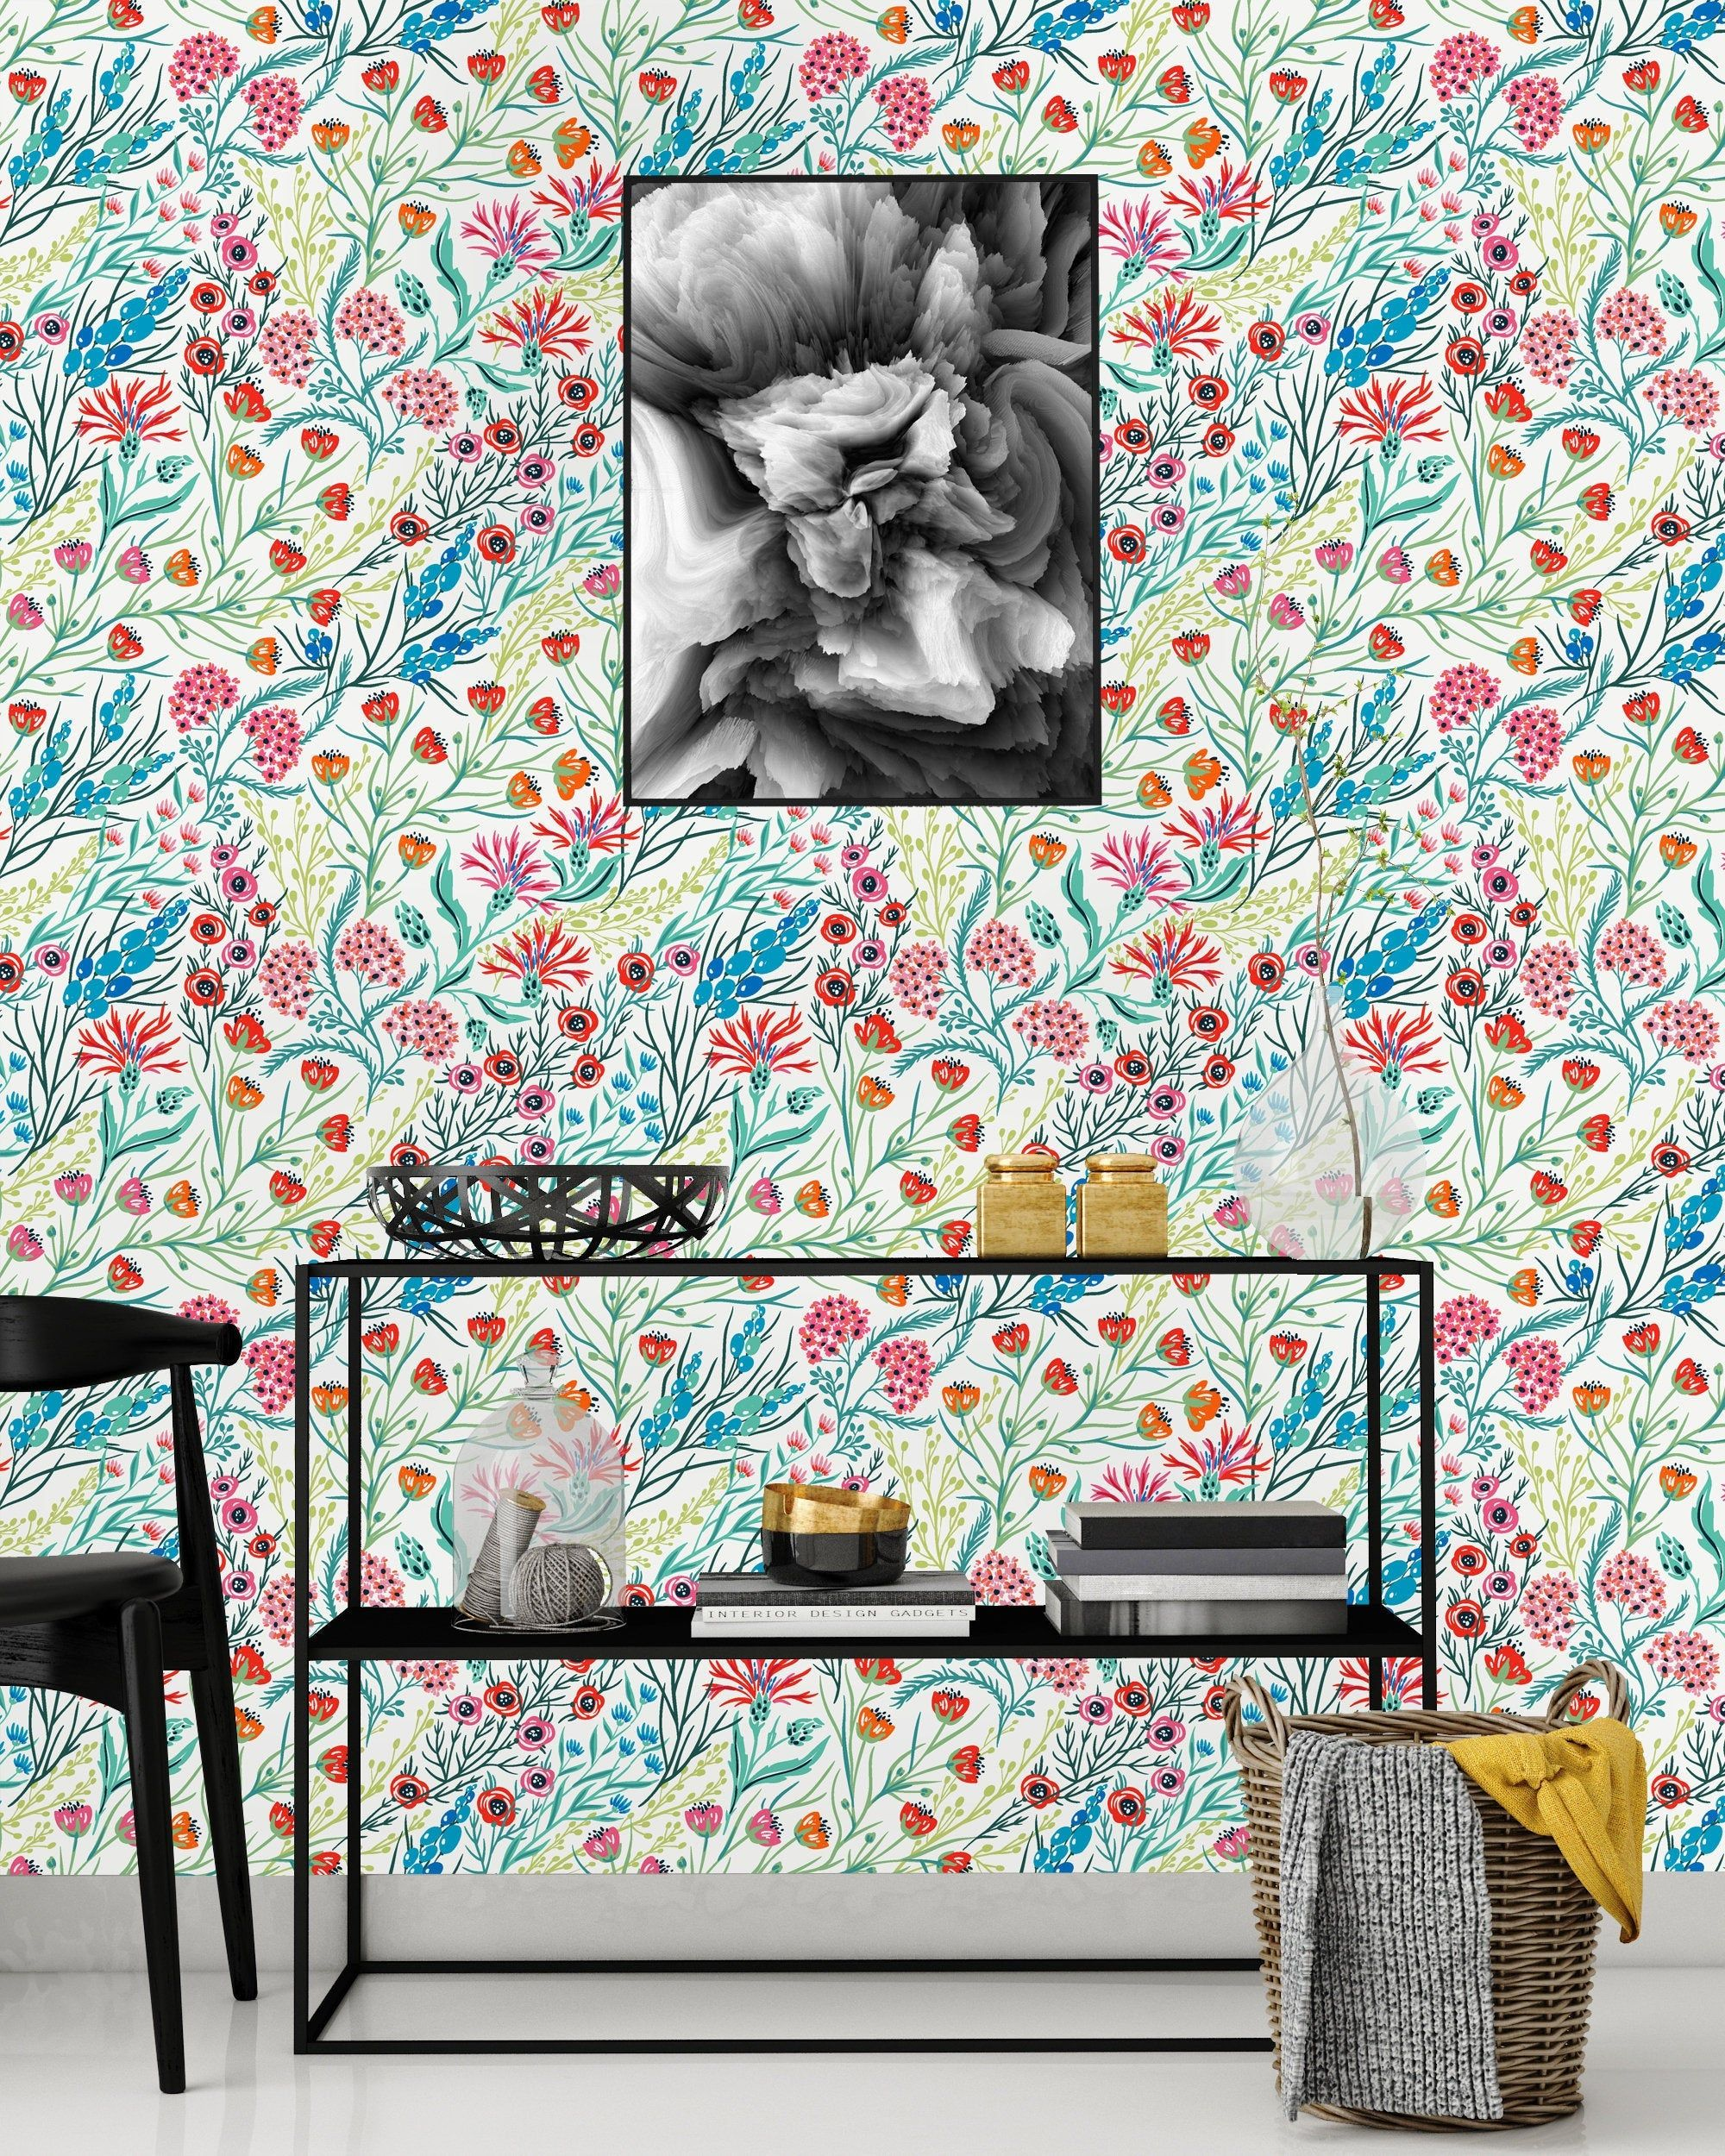 Poppy and Wild flowers Removable Wallpaper Peel